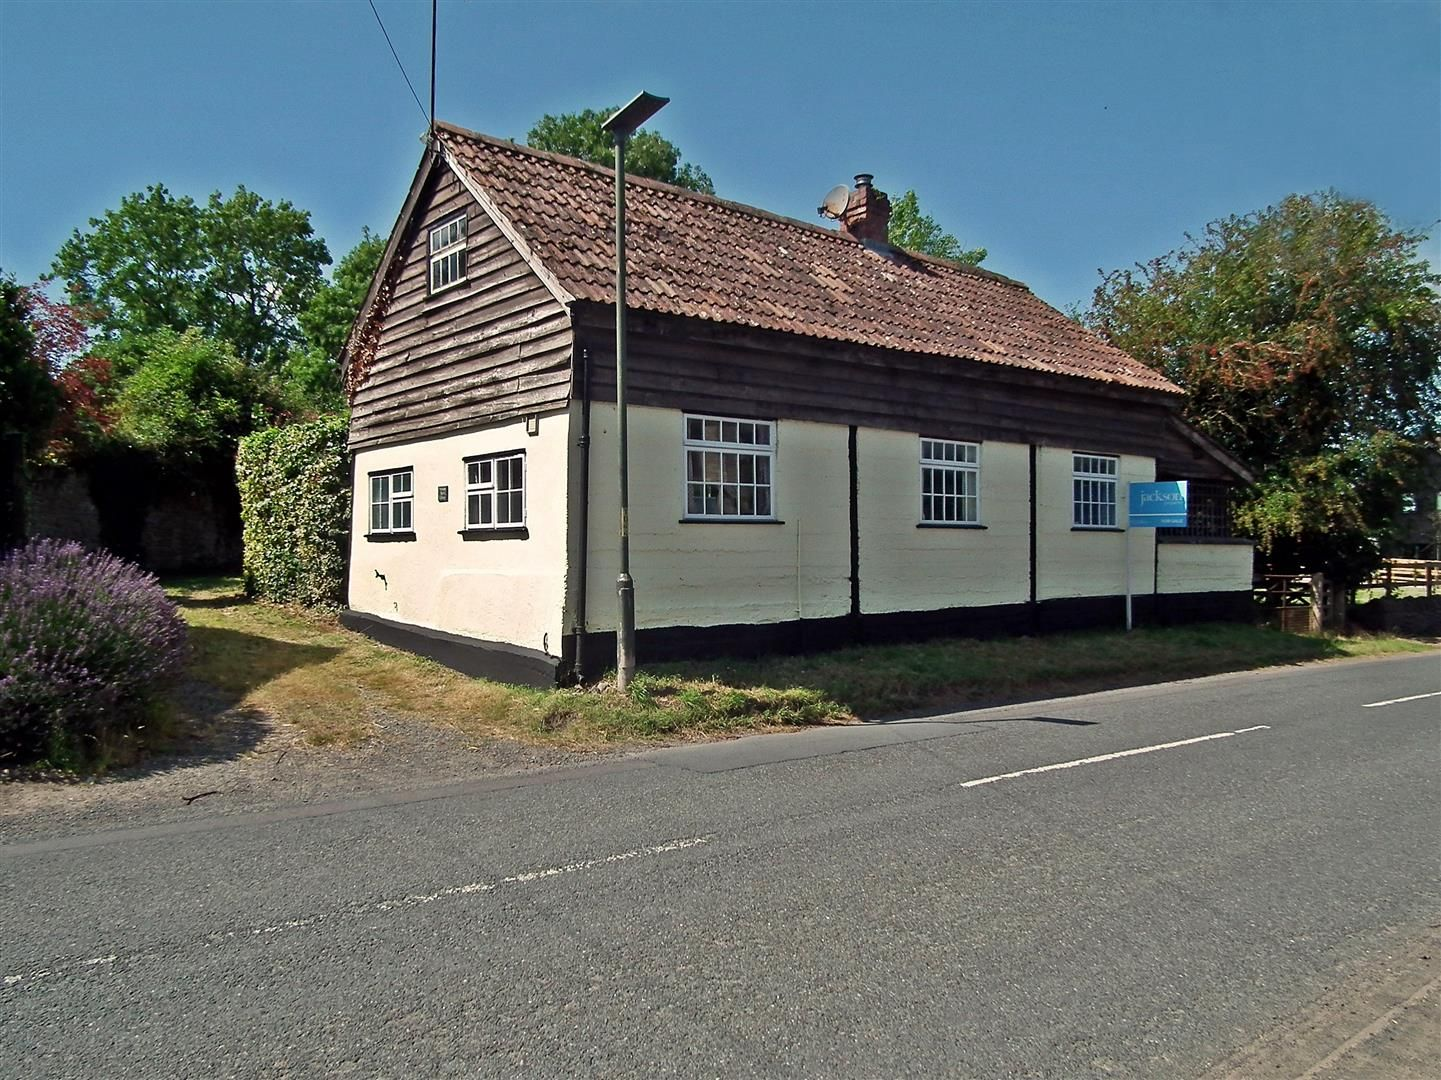 3 bed cottage for sale in Weobley, HR4